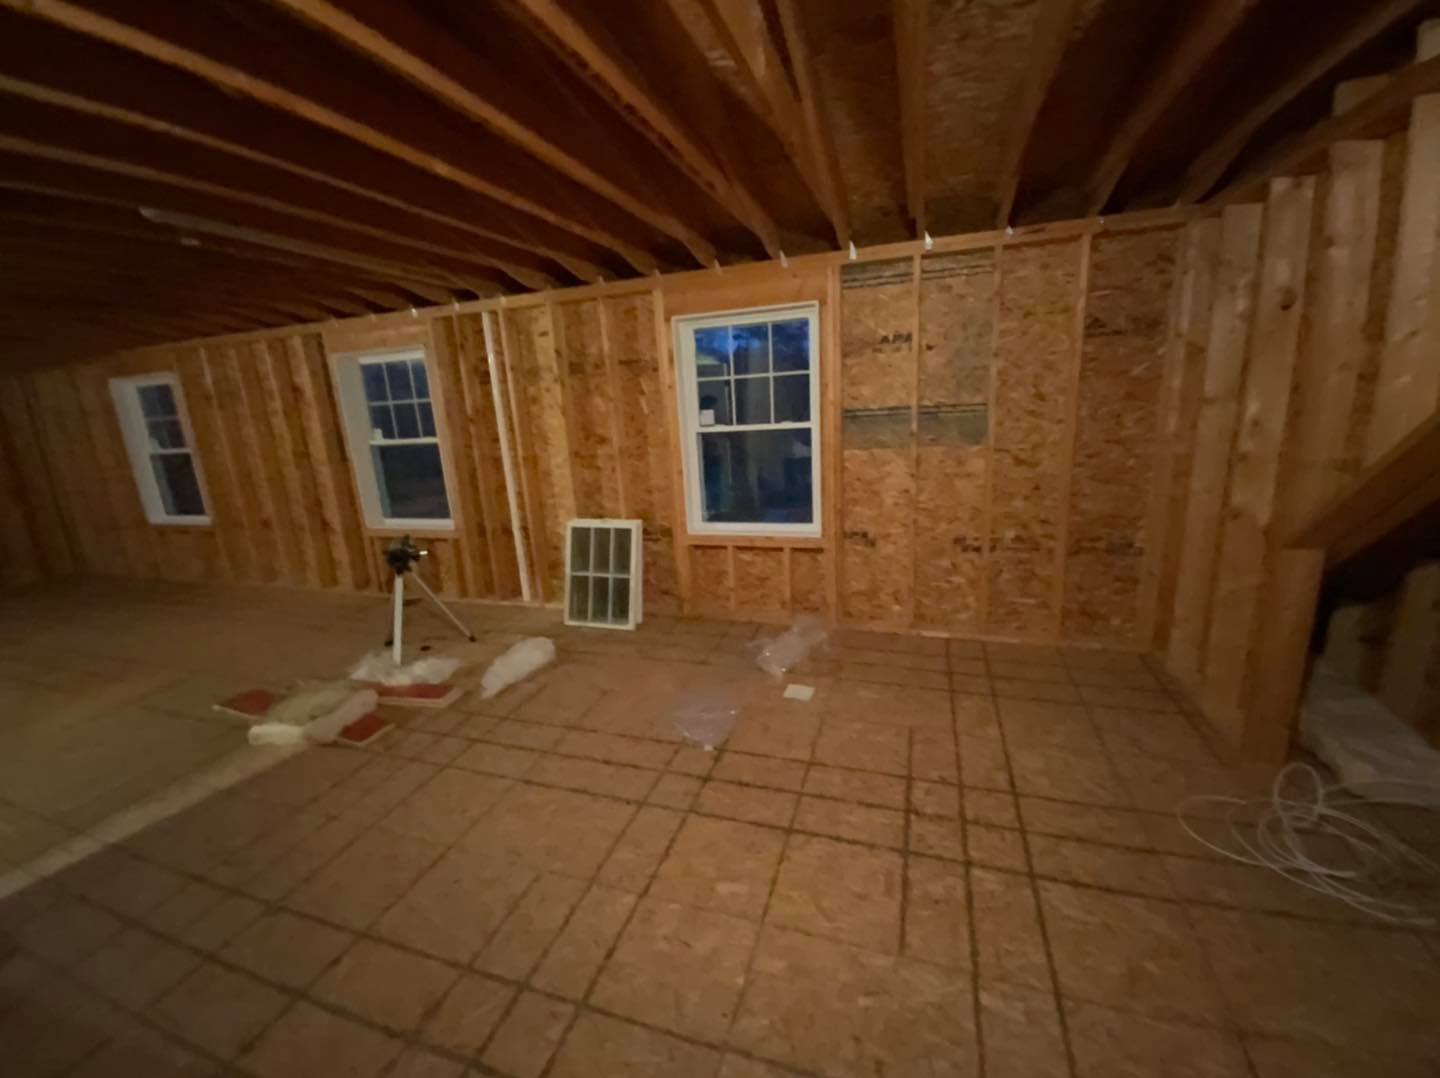 3rd Floor Attic Space